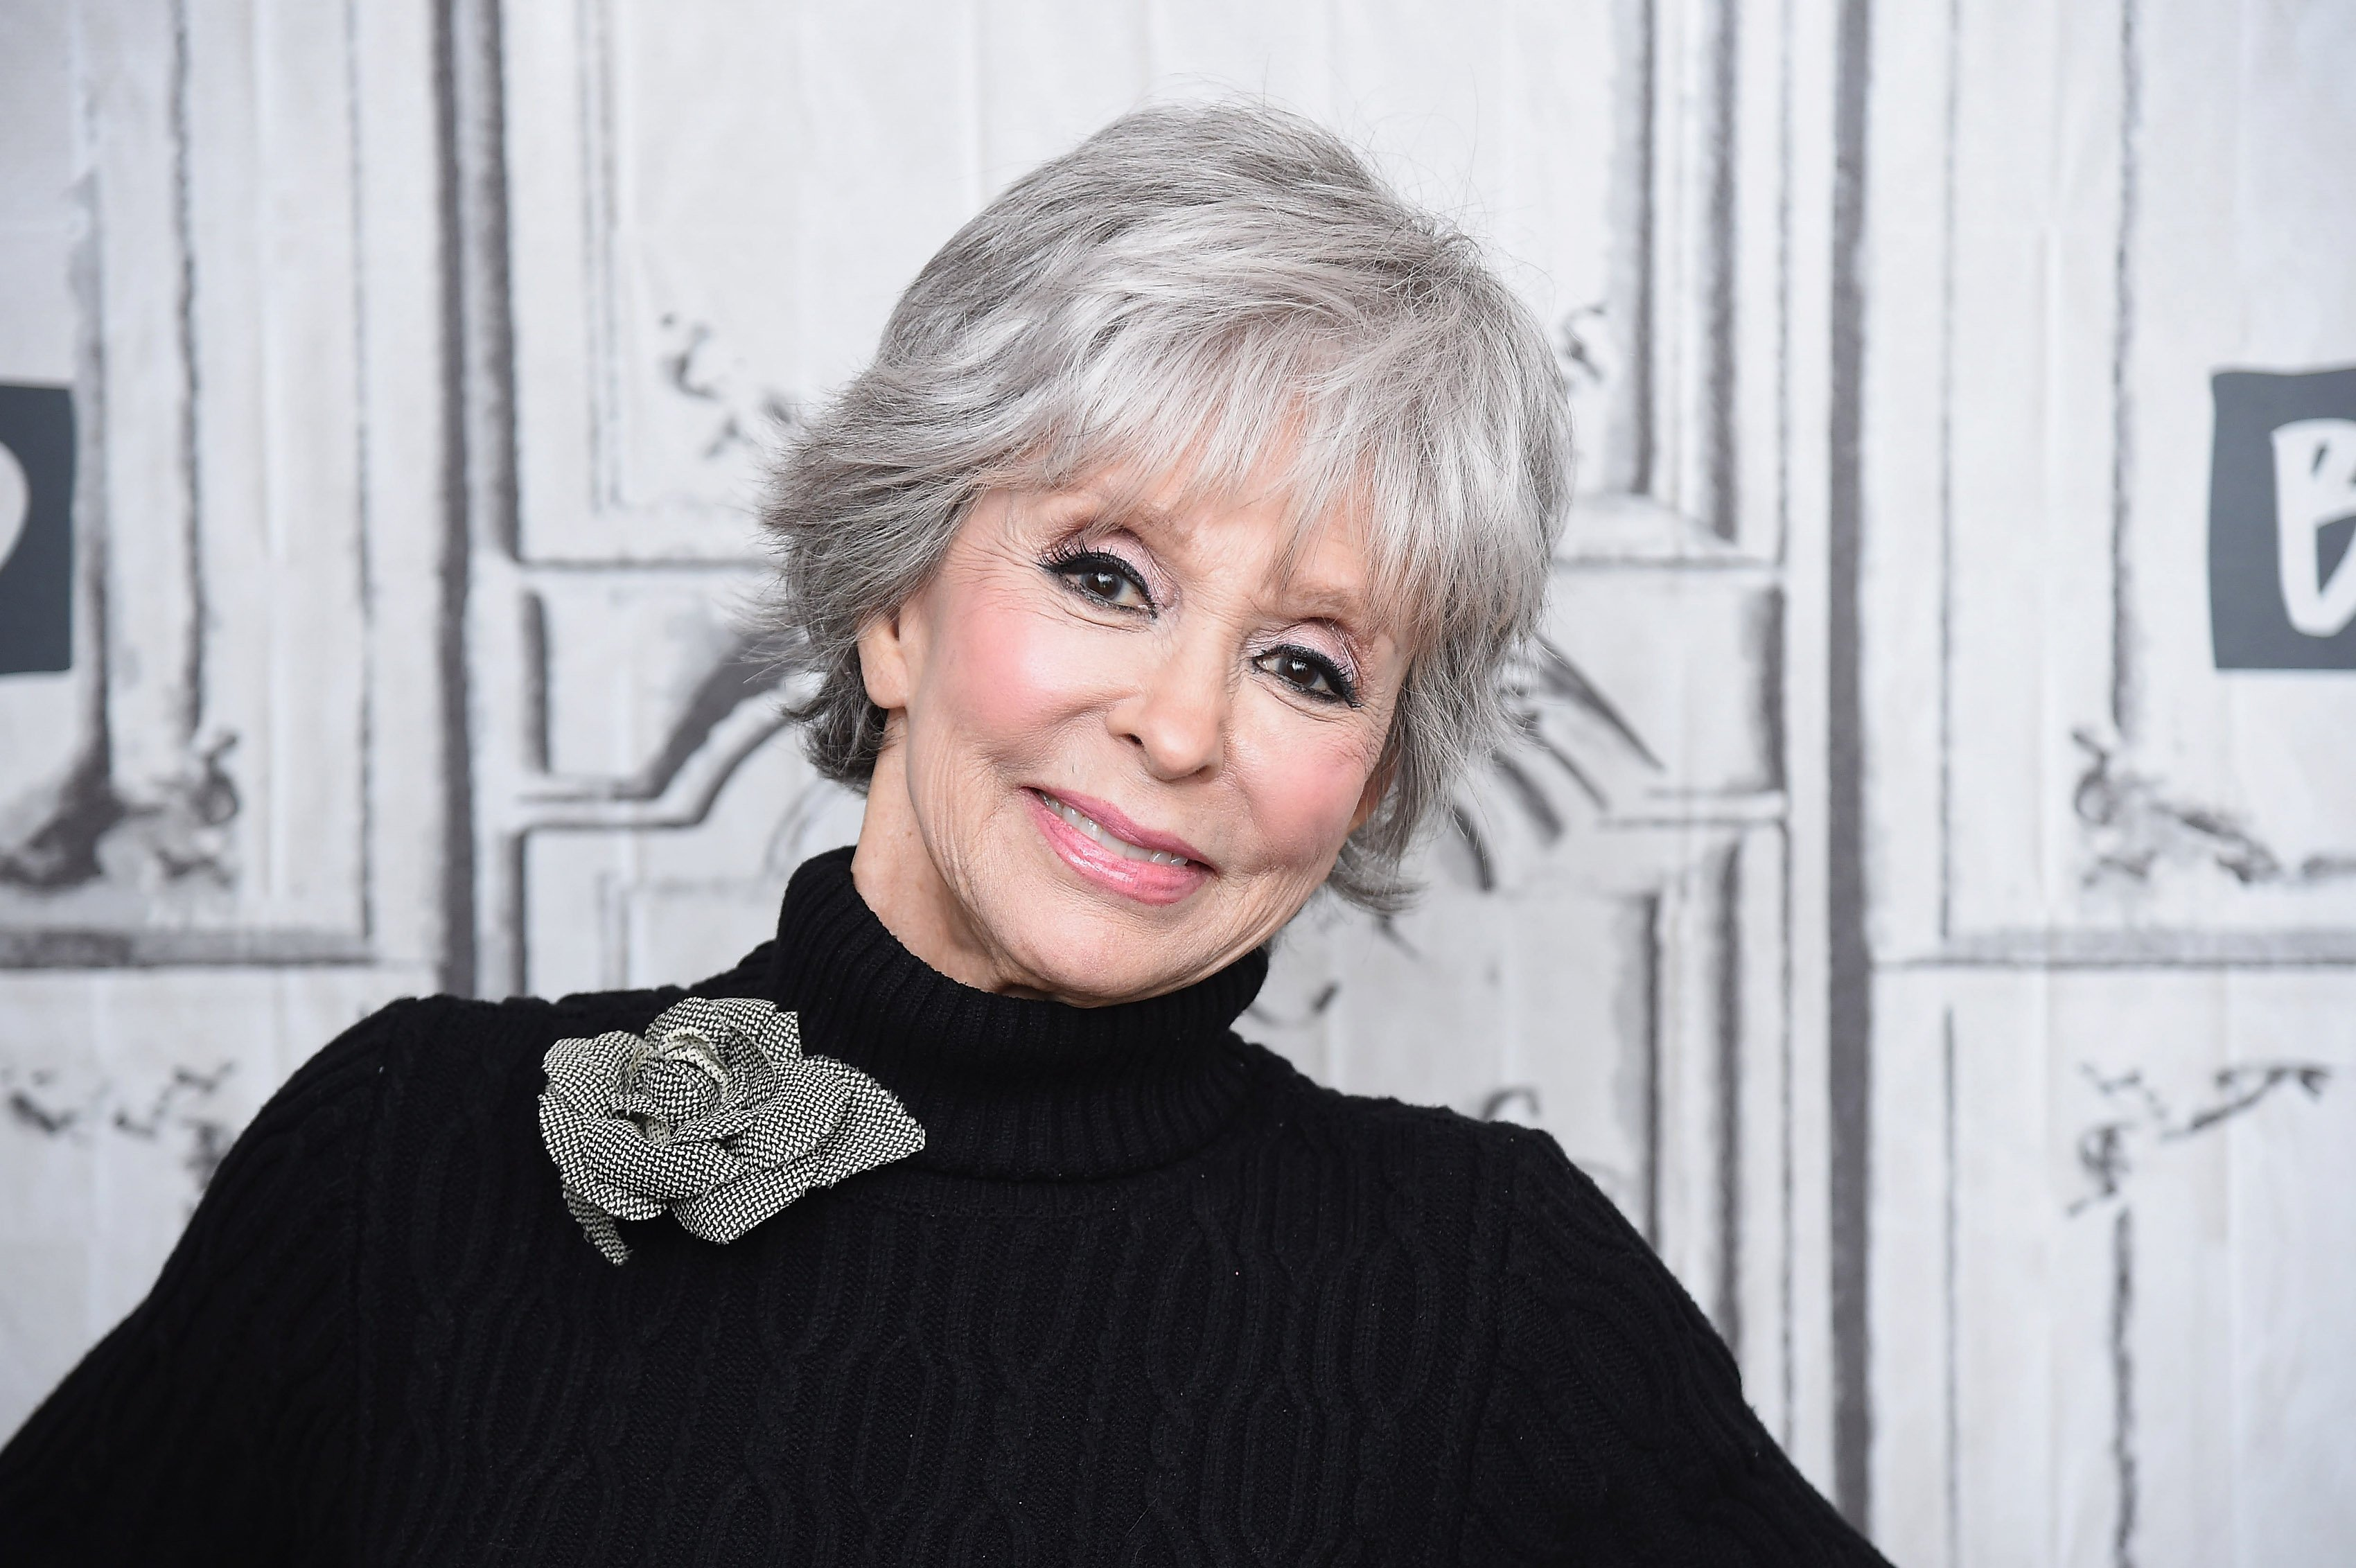 Image Credits: Getty Images | Rita Moreno lived an intense life